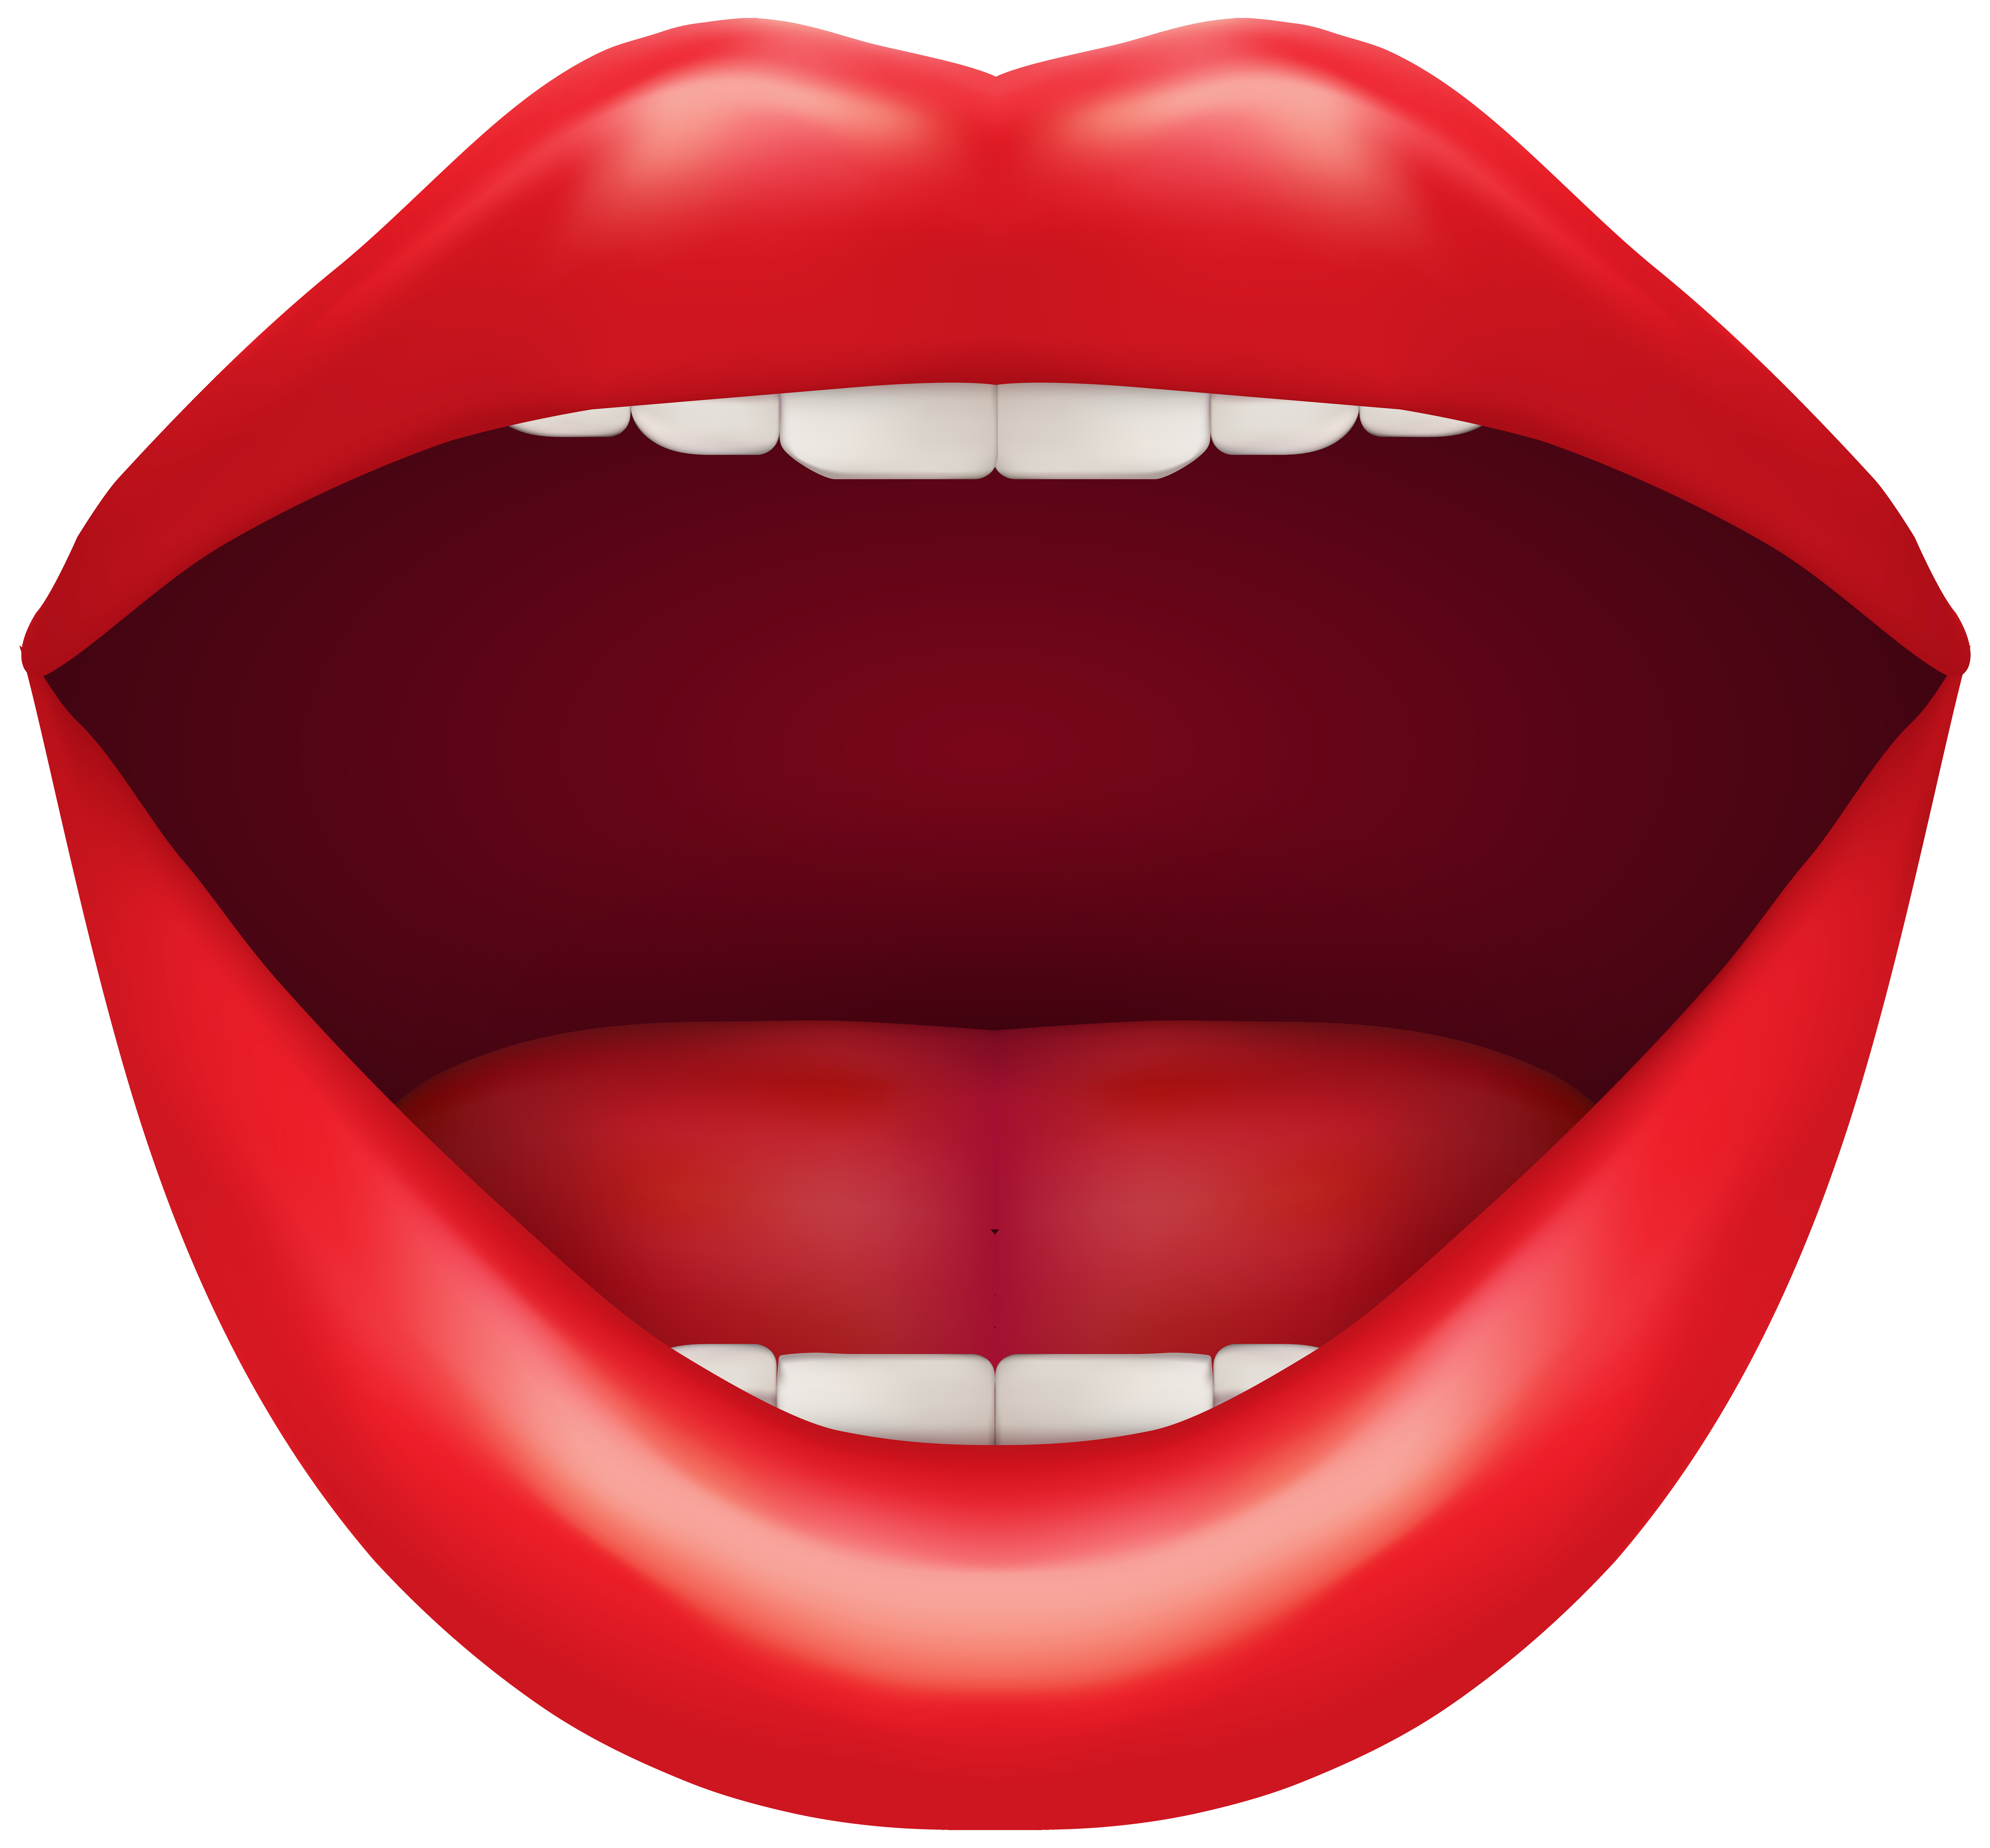 Tooth clipart open mouth. Red png clip art